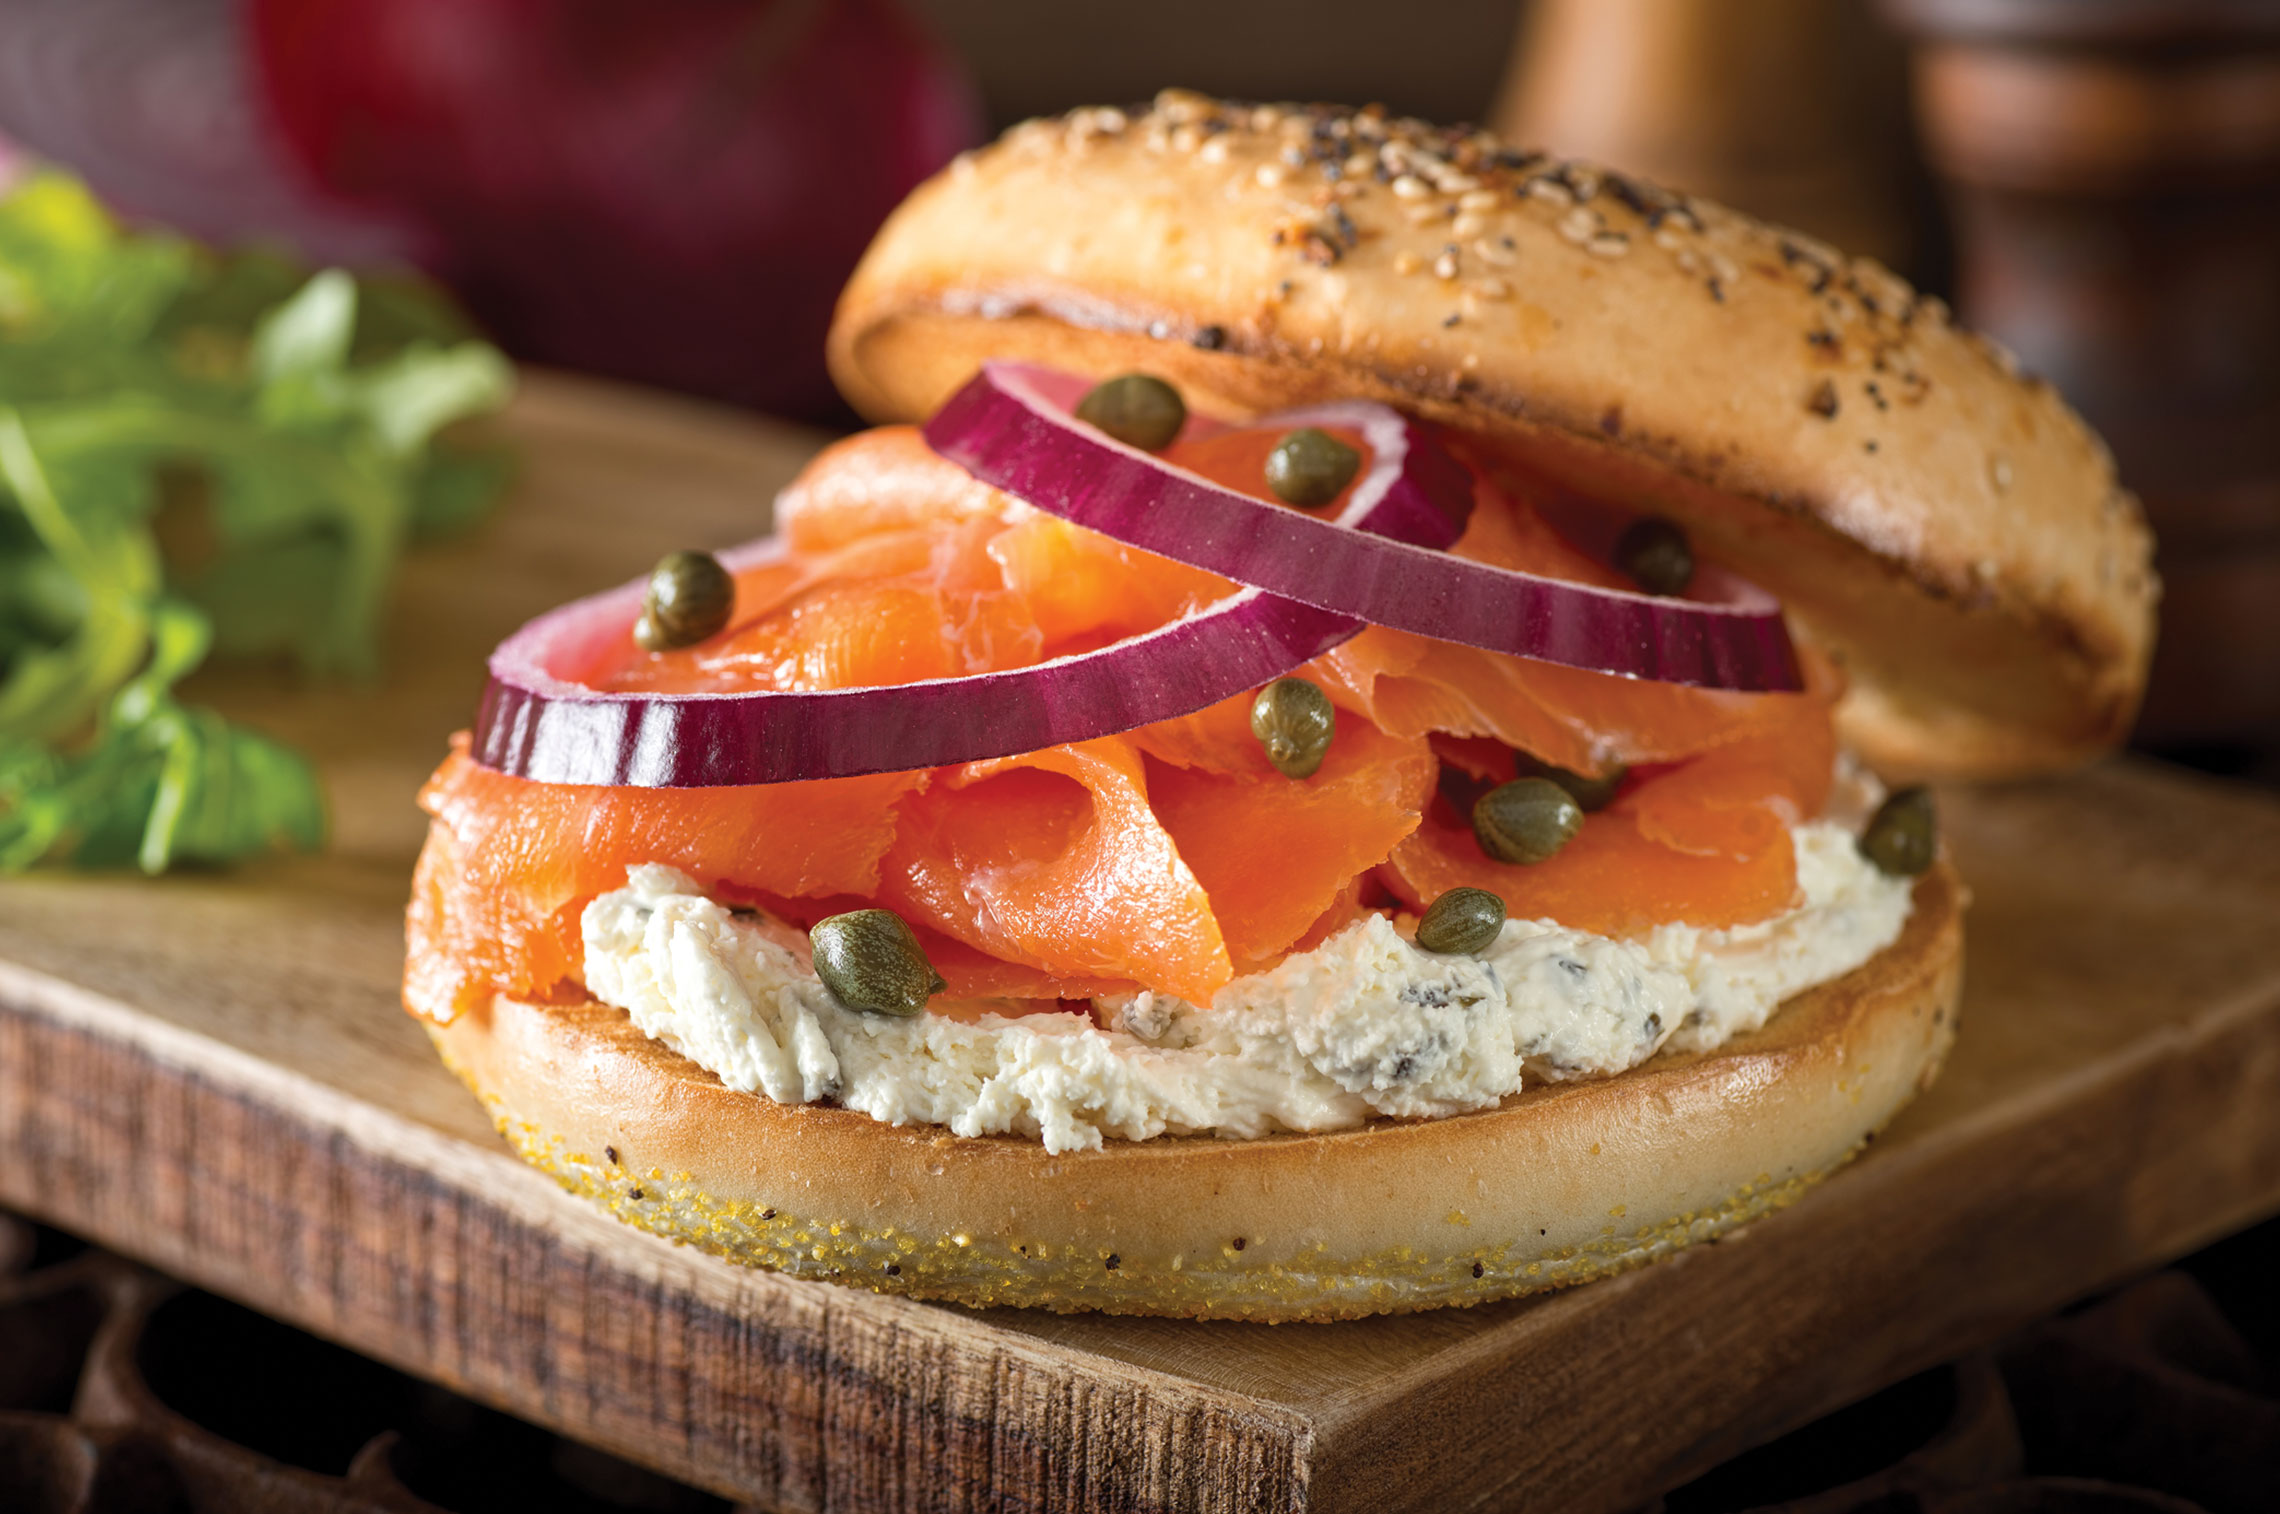 How to Make a Delicious Omega-3 Bagel